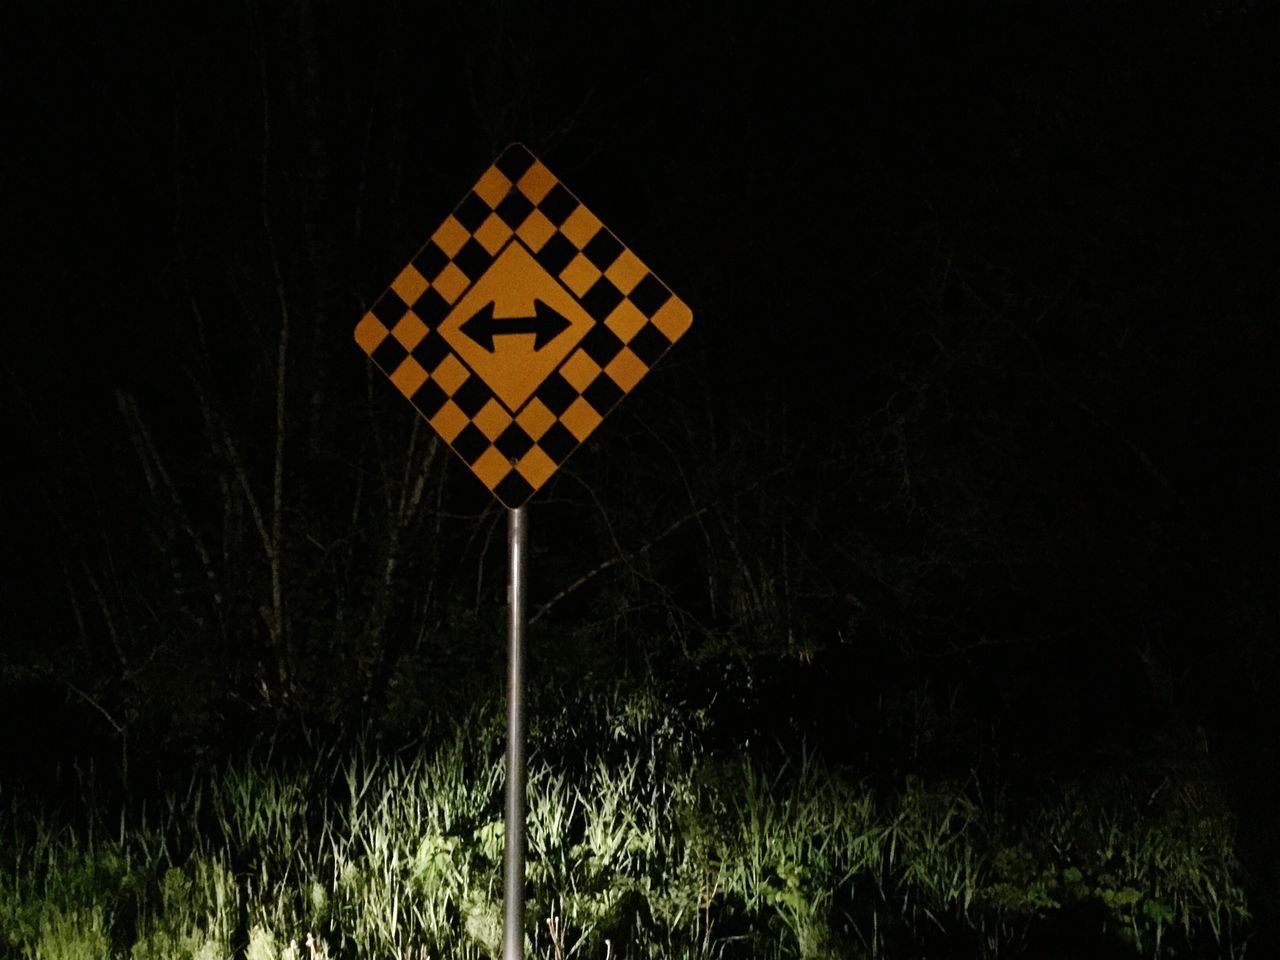 Night No People Outdoors Illuminated Yellow Sport Nature Black Background Close-up direction sign